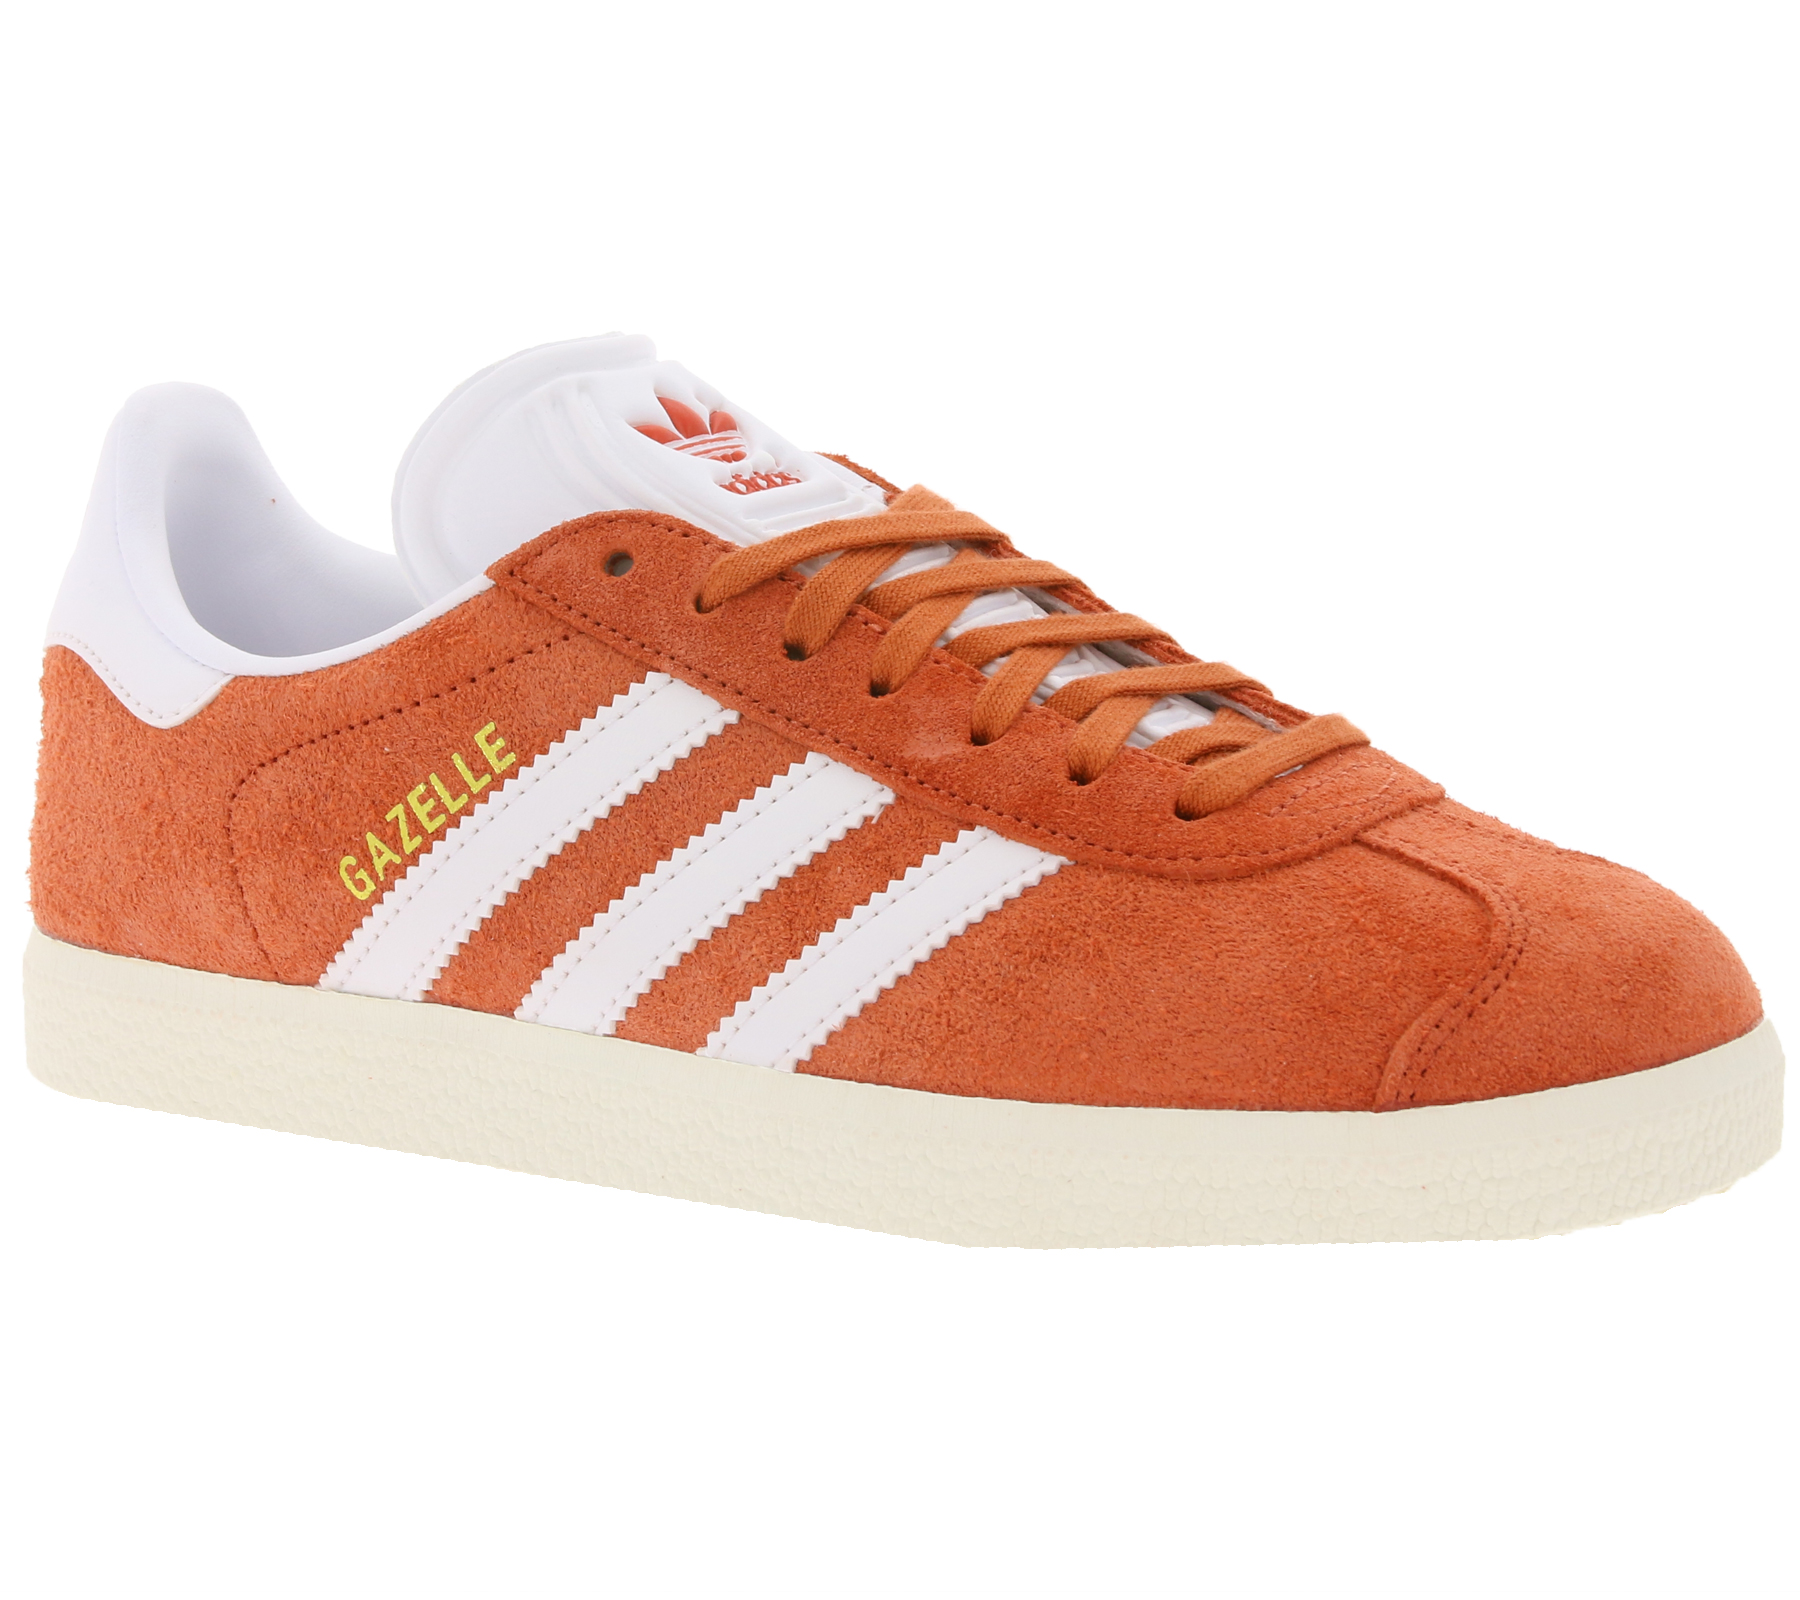 Details about Adidas Casual Sneakers Womens Shoes Originals Gazelle Trainer Casual Orange show original title